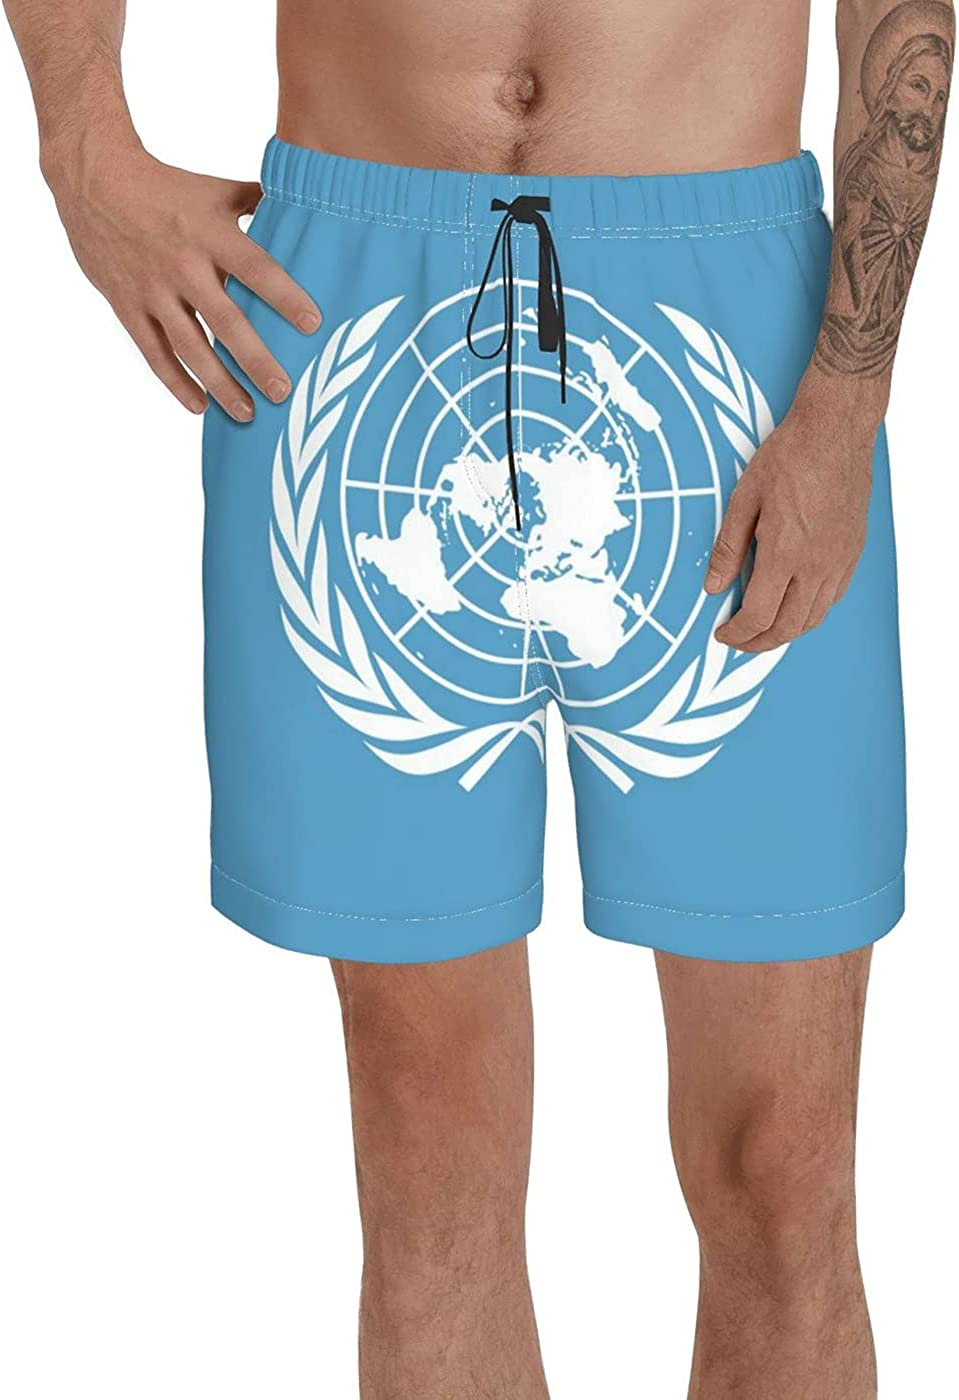 United Nations Flag Men's 3D Printed Funny Summer Quick Dry Swim Short Board Shorts with